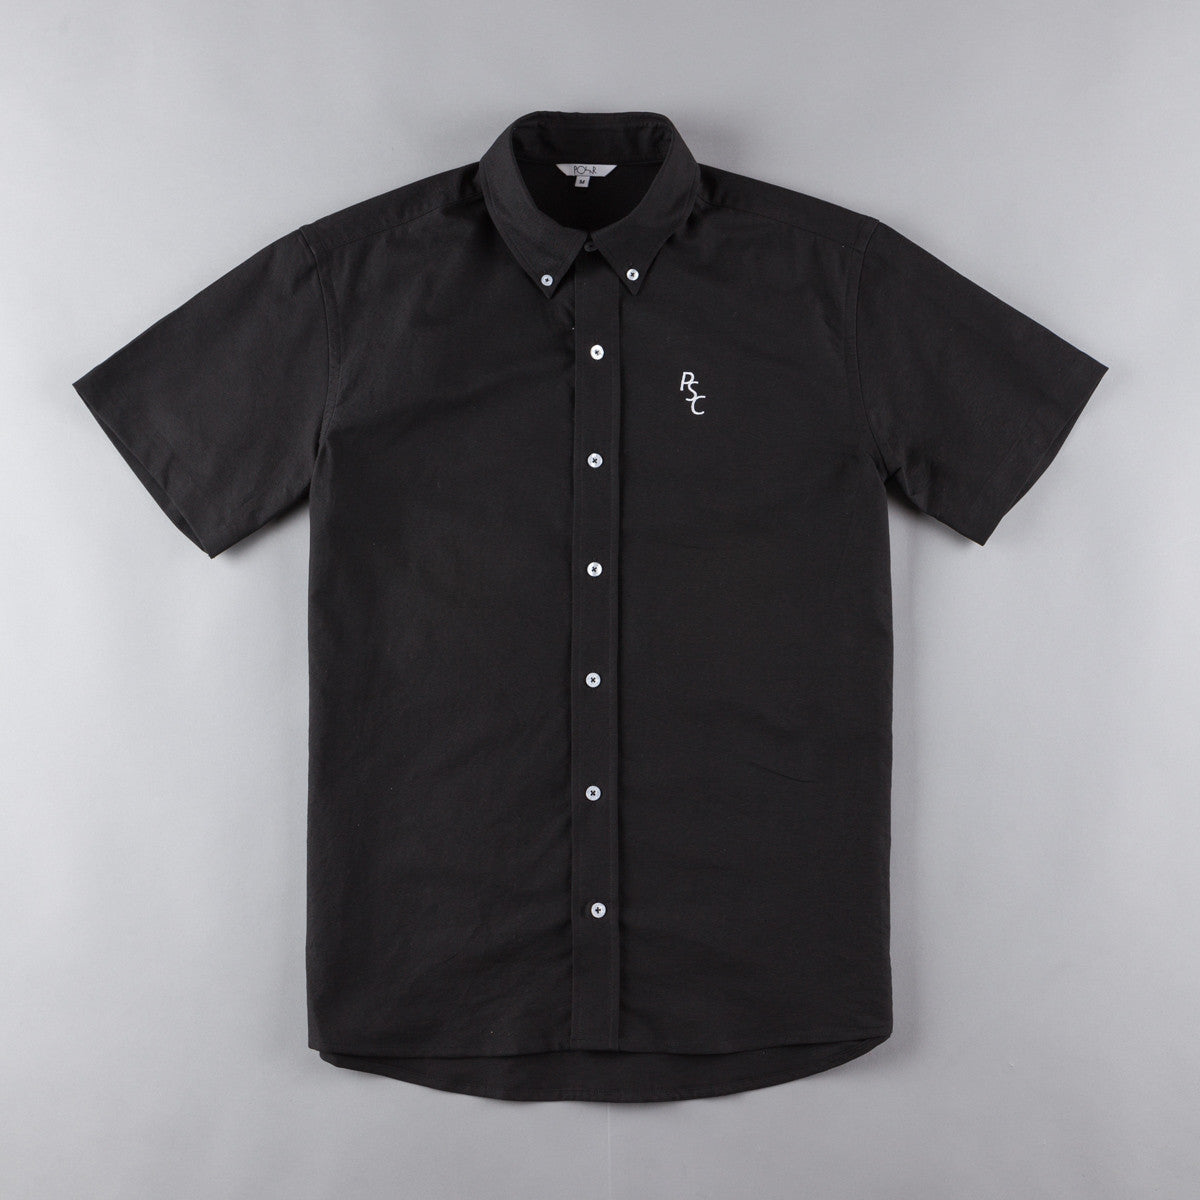 Polar PSC Short Sleeve Shirt